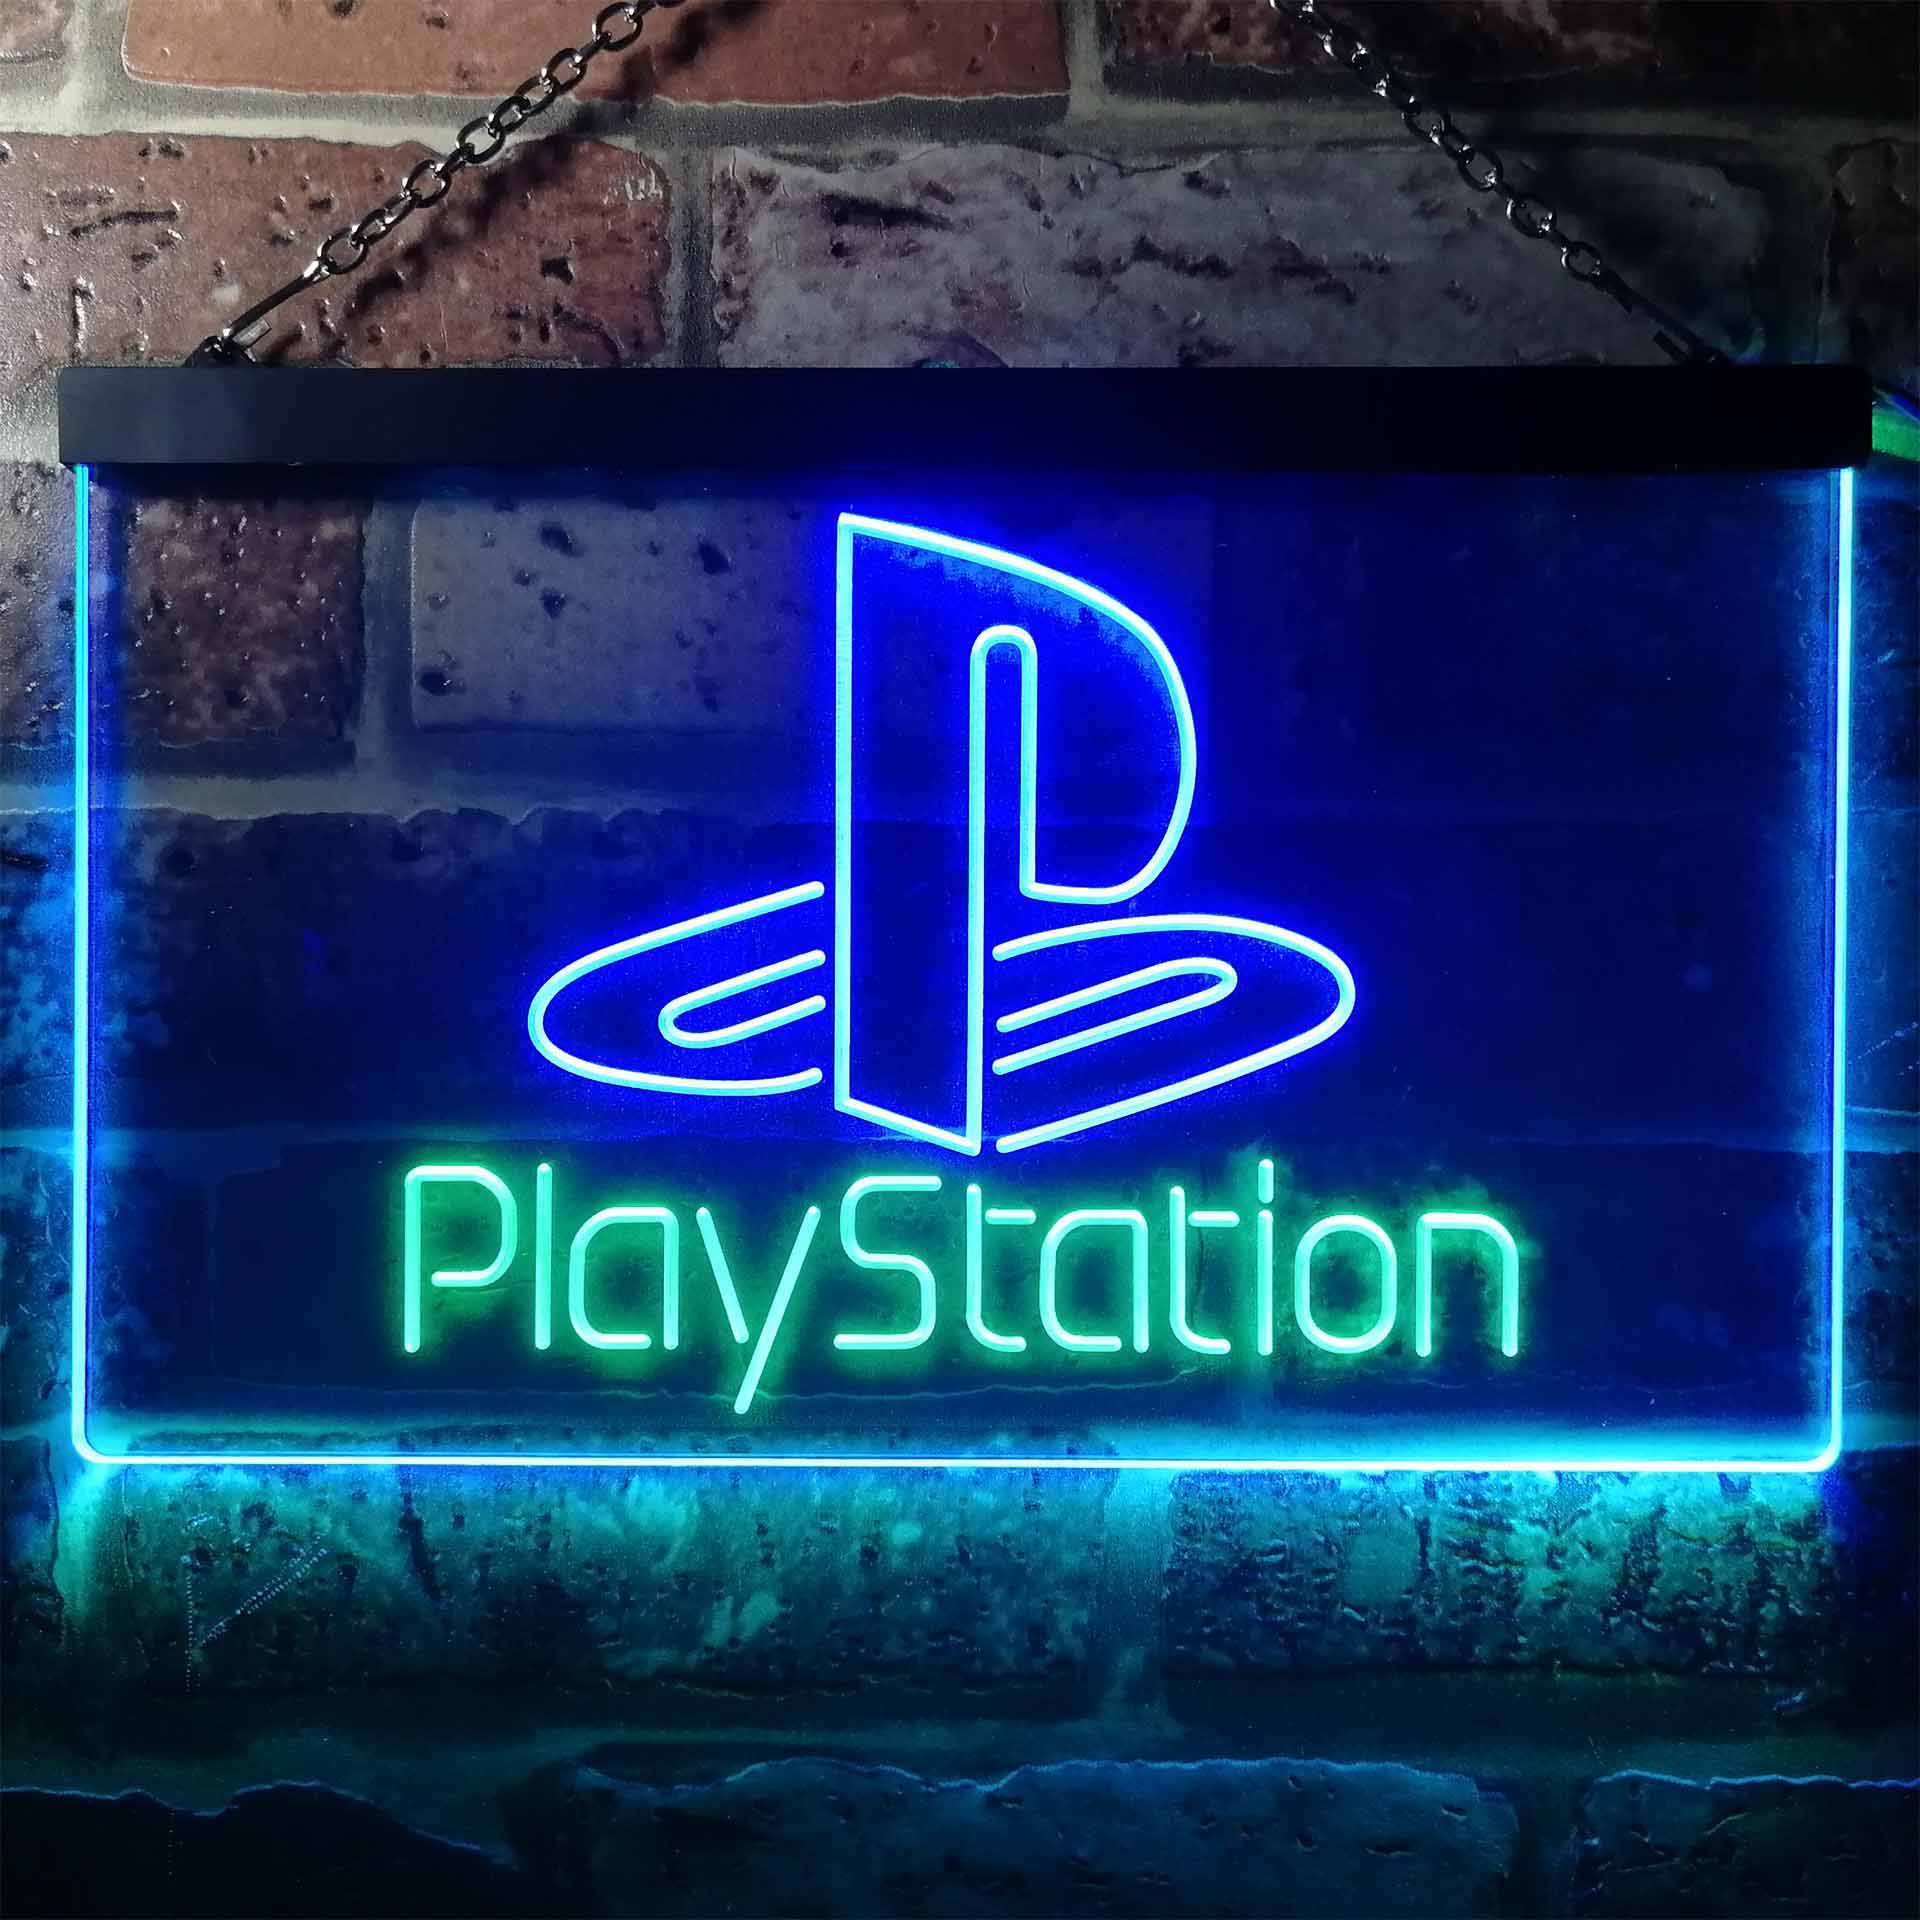 Playstation Game Room Kid Dual Color LED Neon Sign ProLedSign